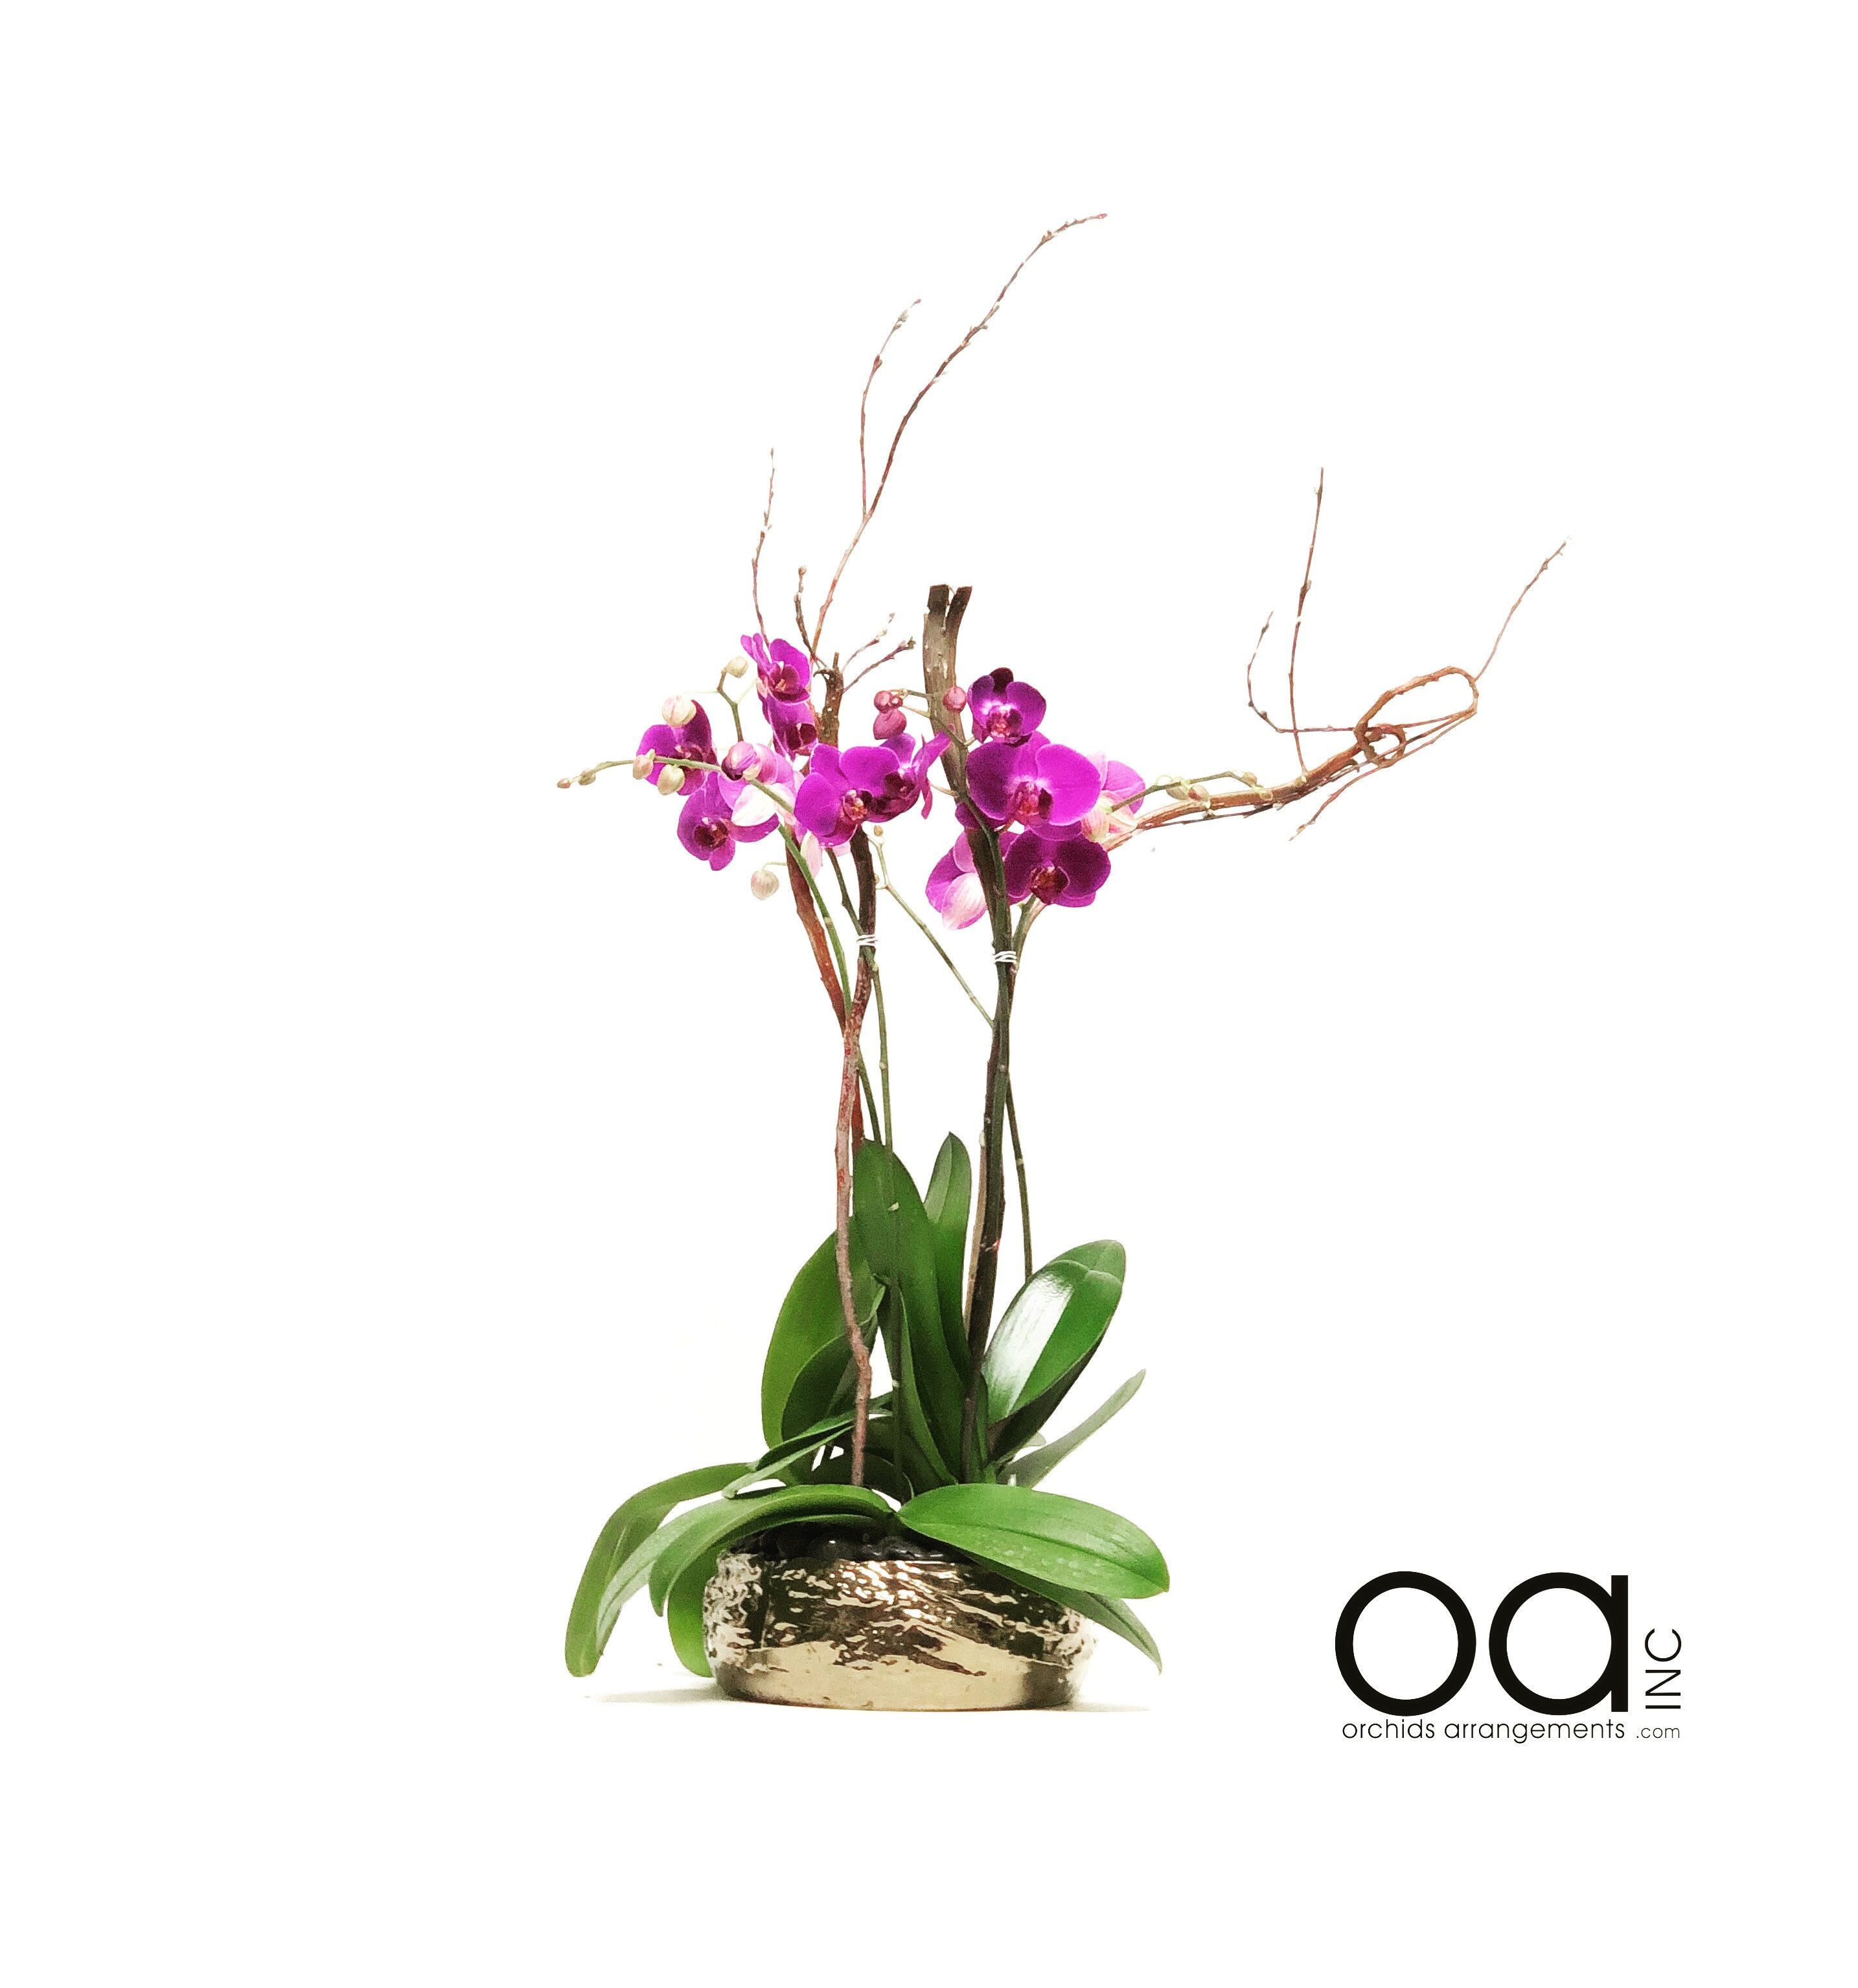 silver vase orchid care of orchid in glass vase awesome send 4 orchids arrangement hollywood pertaining to orchid in glass vase awesome send 4 orchids arrangement hollywood bowl collection